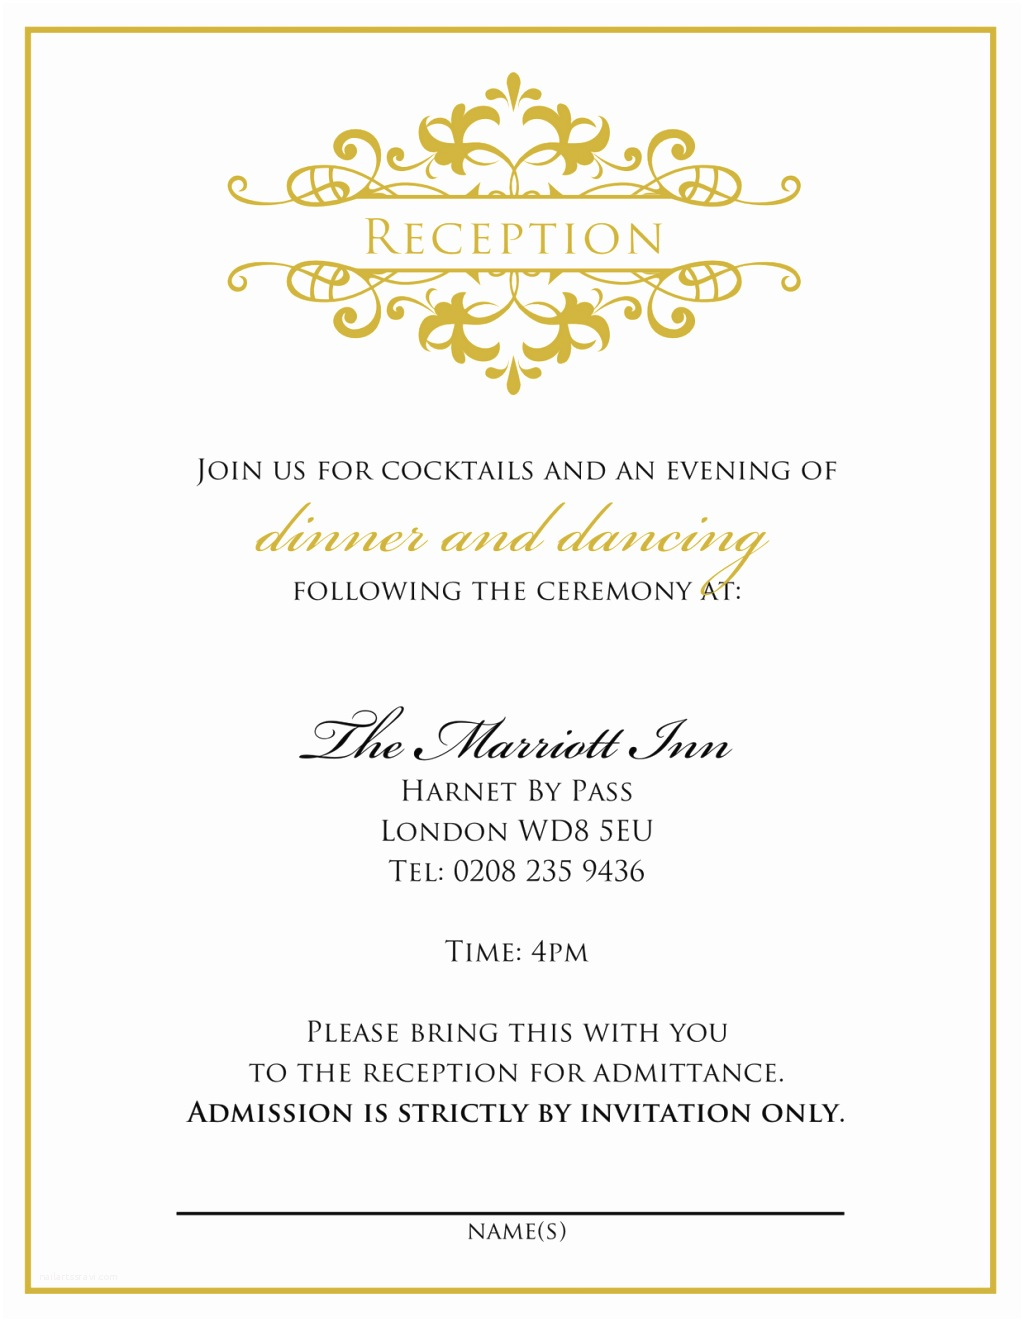 Sample Wedding Invitation Wording Wedding Invitation Funny Wording Examples From Bride and